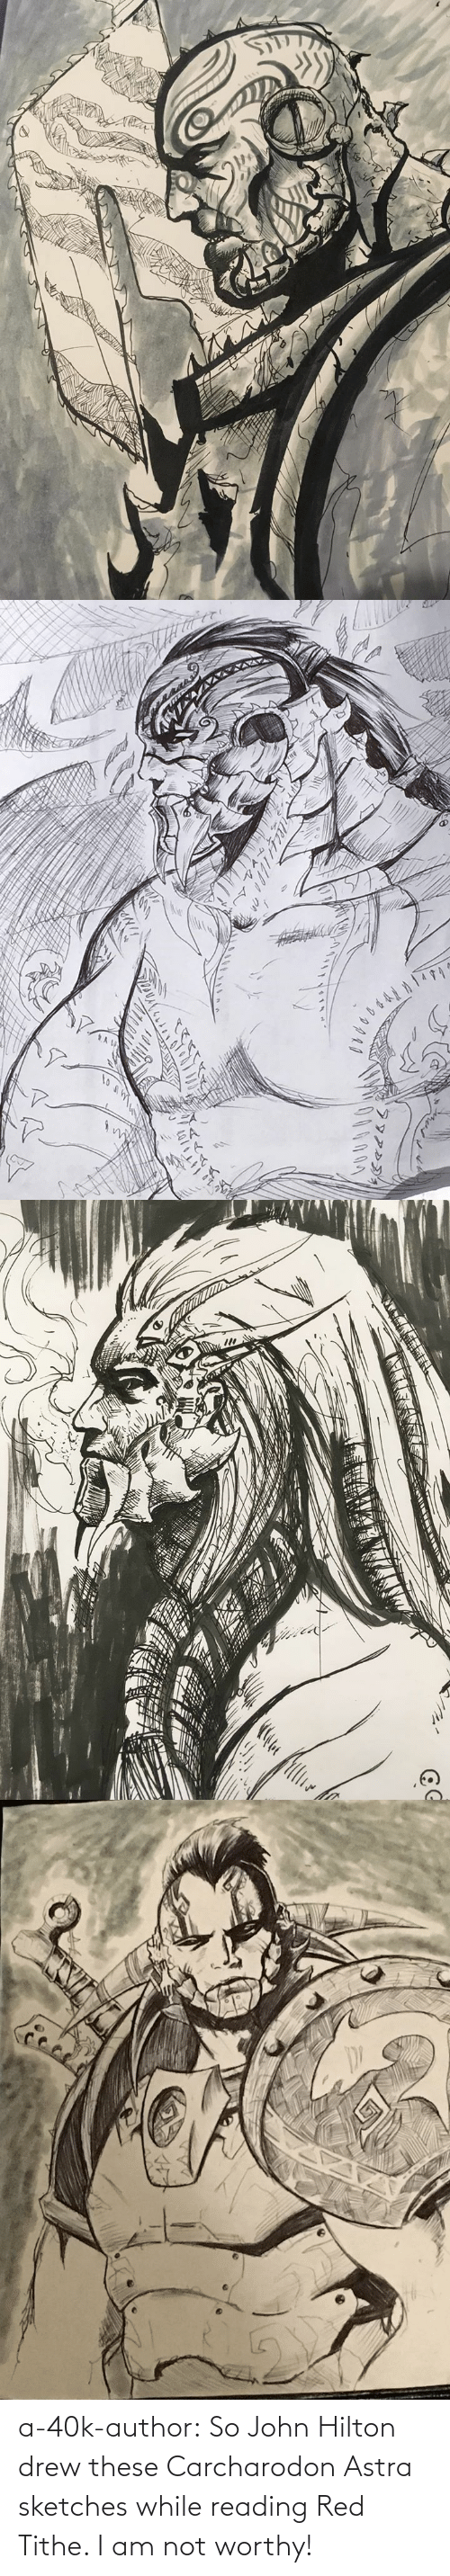 red: a-40k-author:  So John Hilton drew these Carcharodon Astra sketches while reading Red Tithe. I am not worthy!